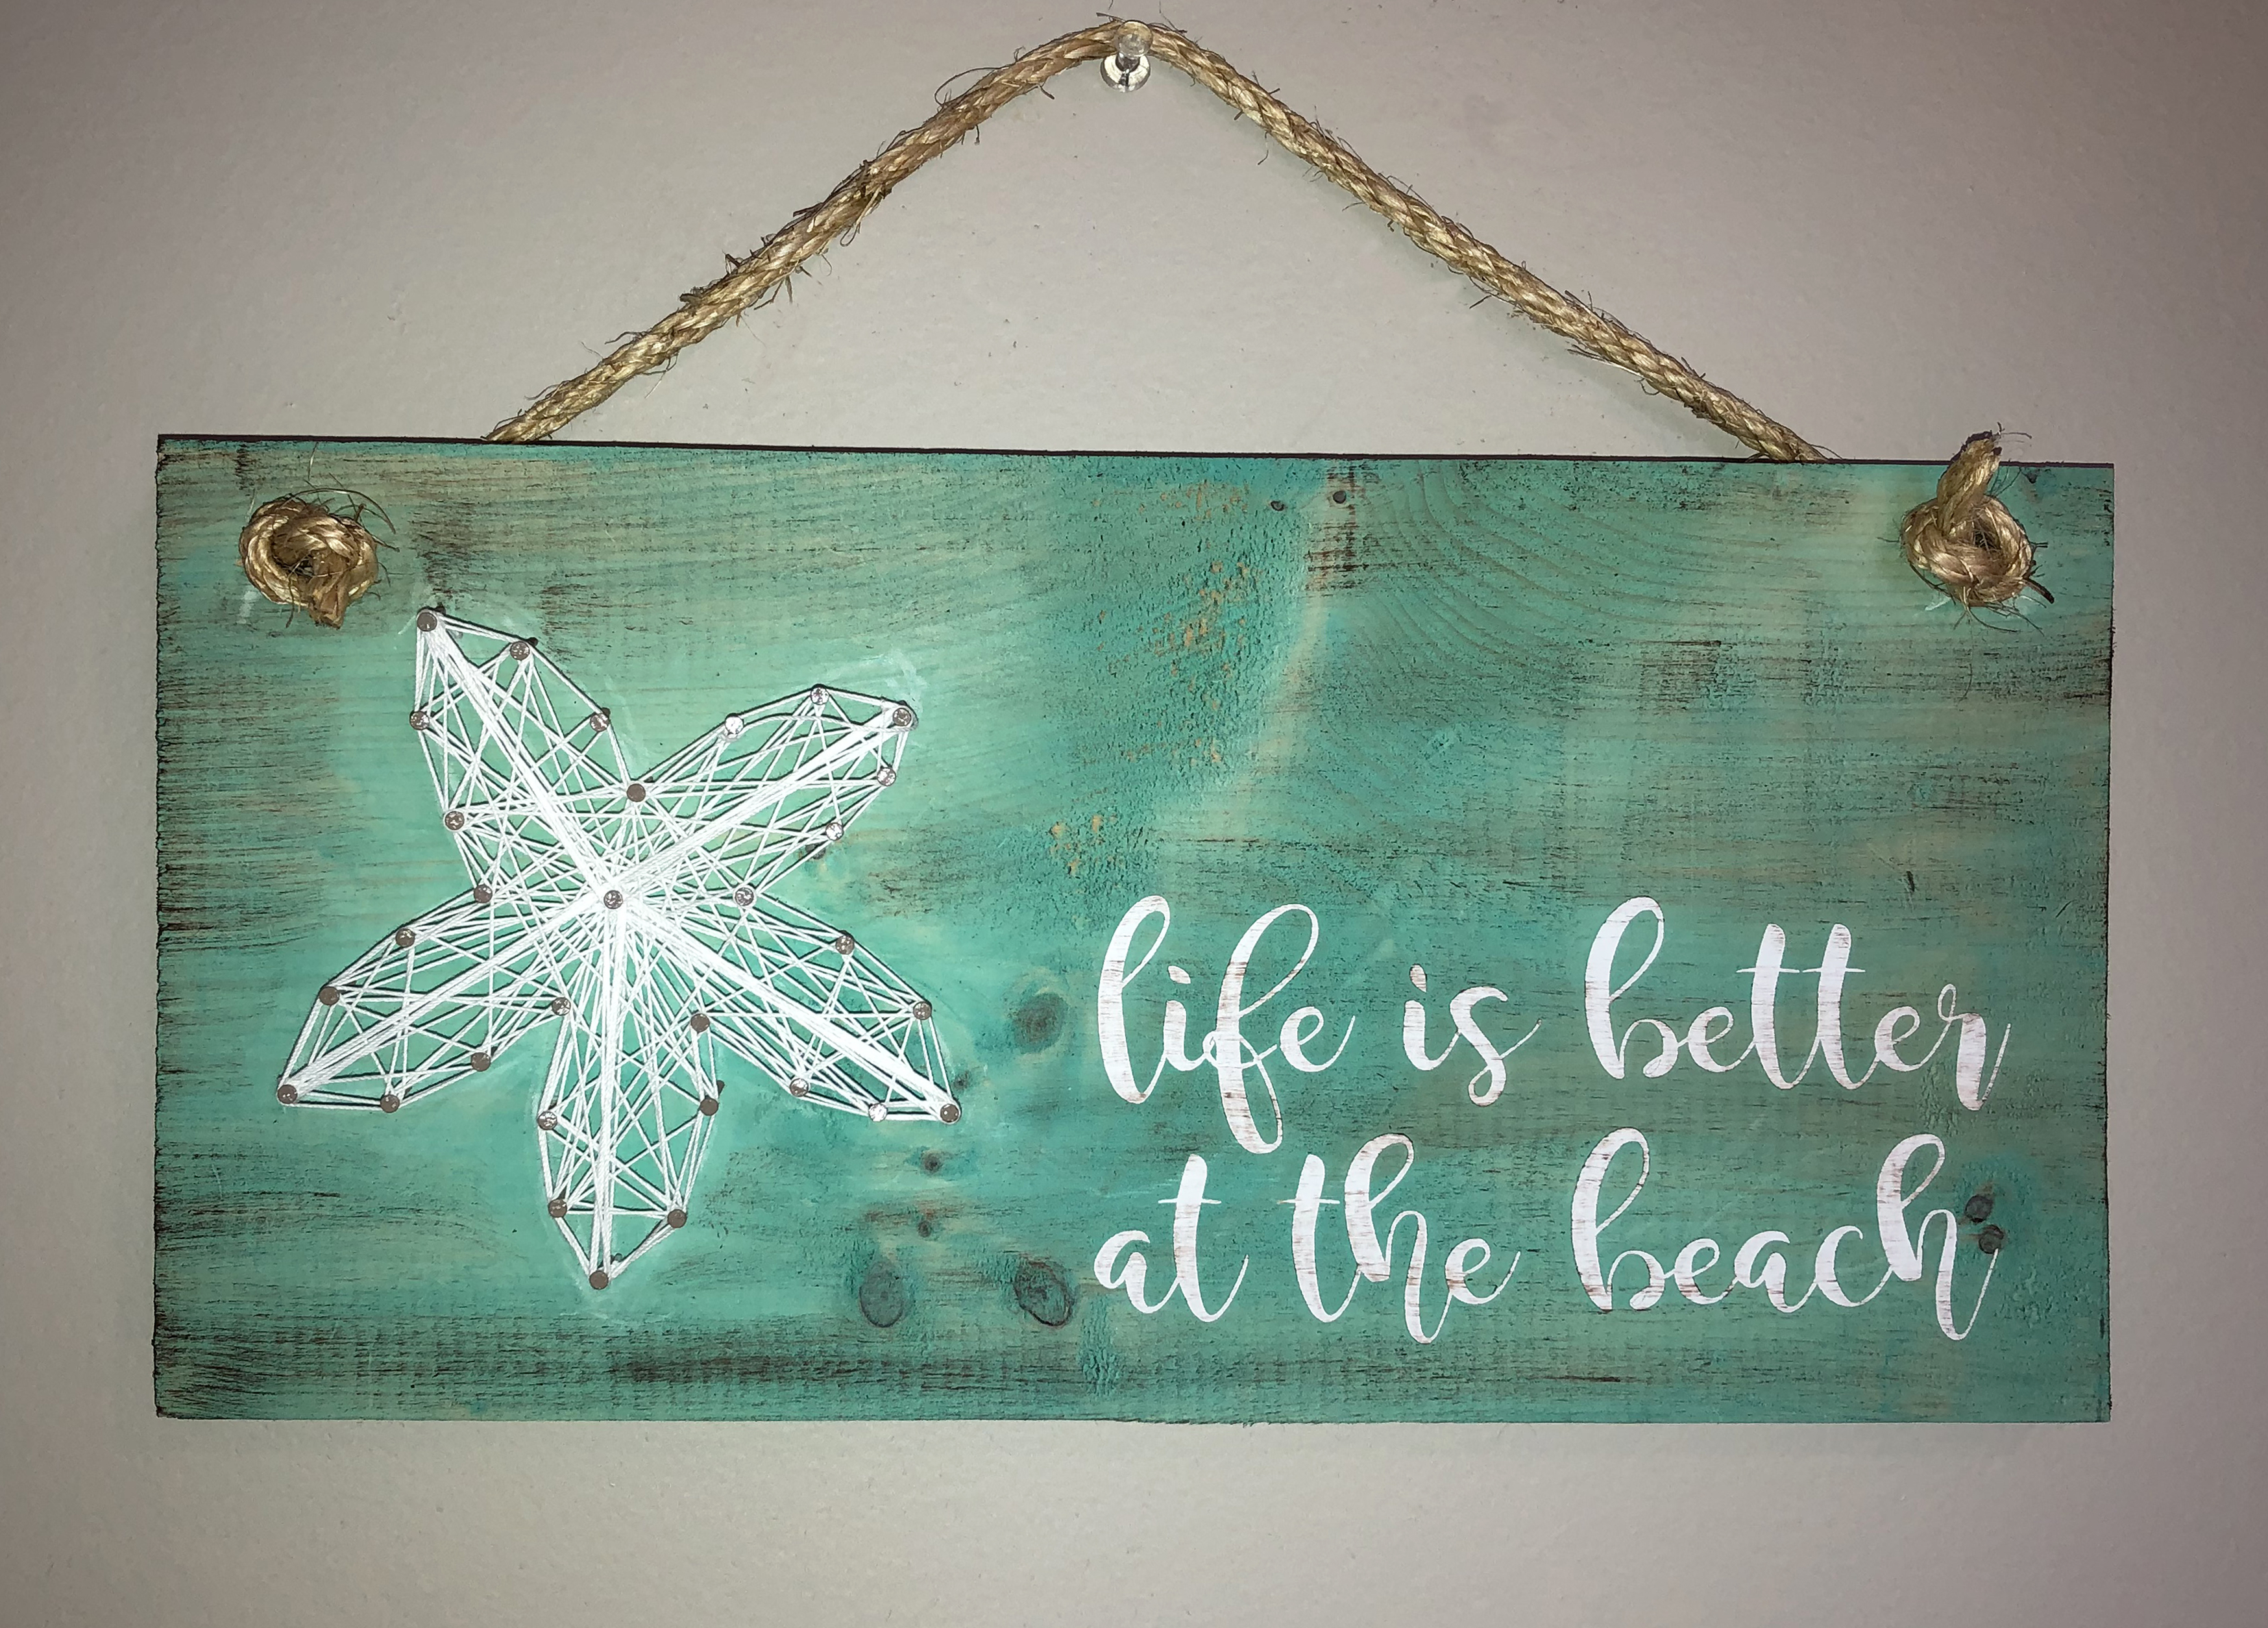 SOLD OUT - BEACH STRING ART ON WOOD - JUNE 26 - 6PM - NAUTI VINE WINERY